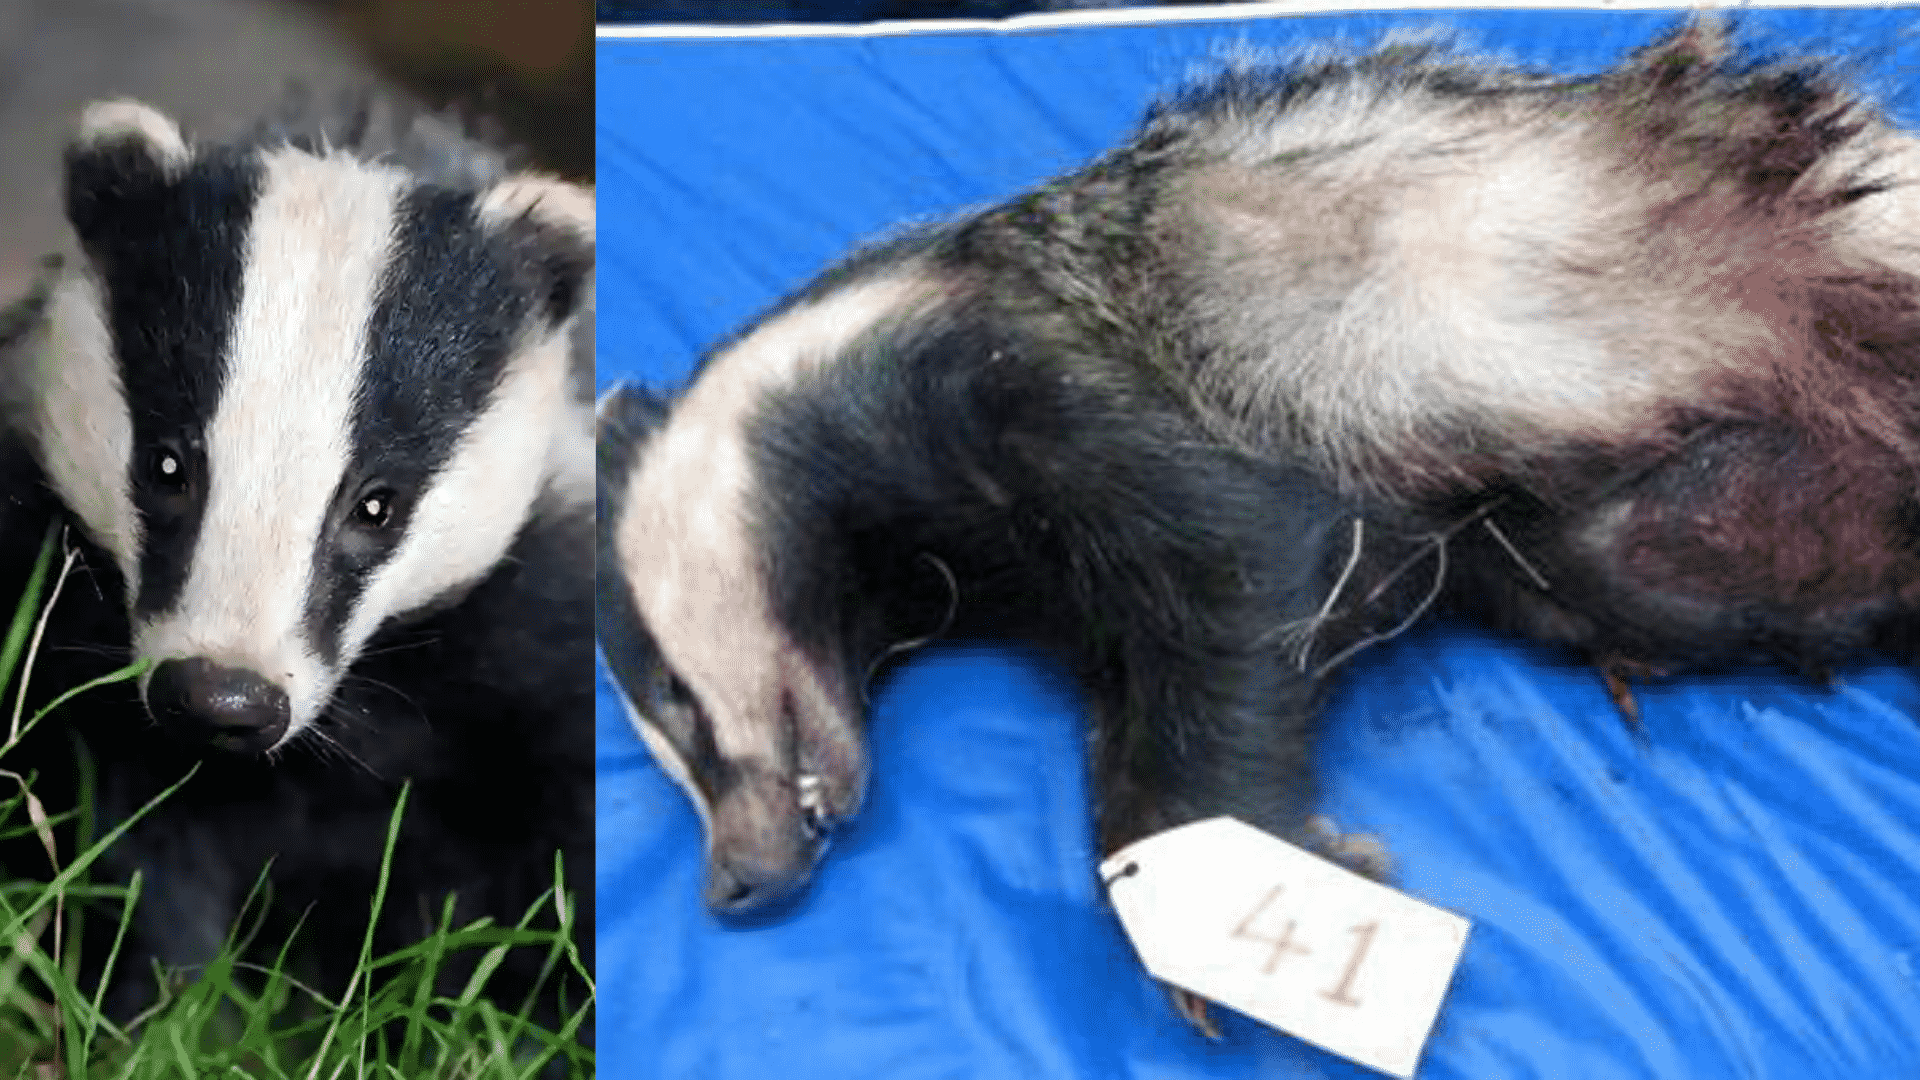 The Tragic Holocaust of Badgers: When Will We Stop Murdering Animals for Our Convenience?